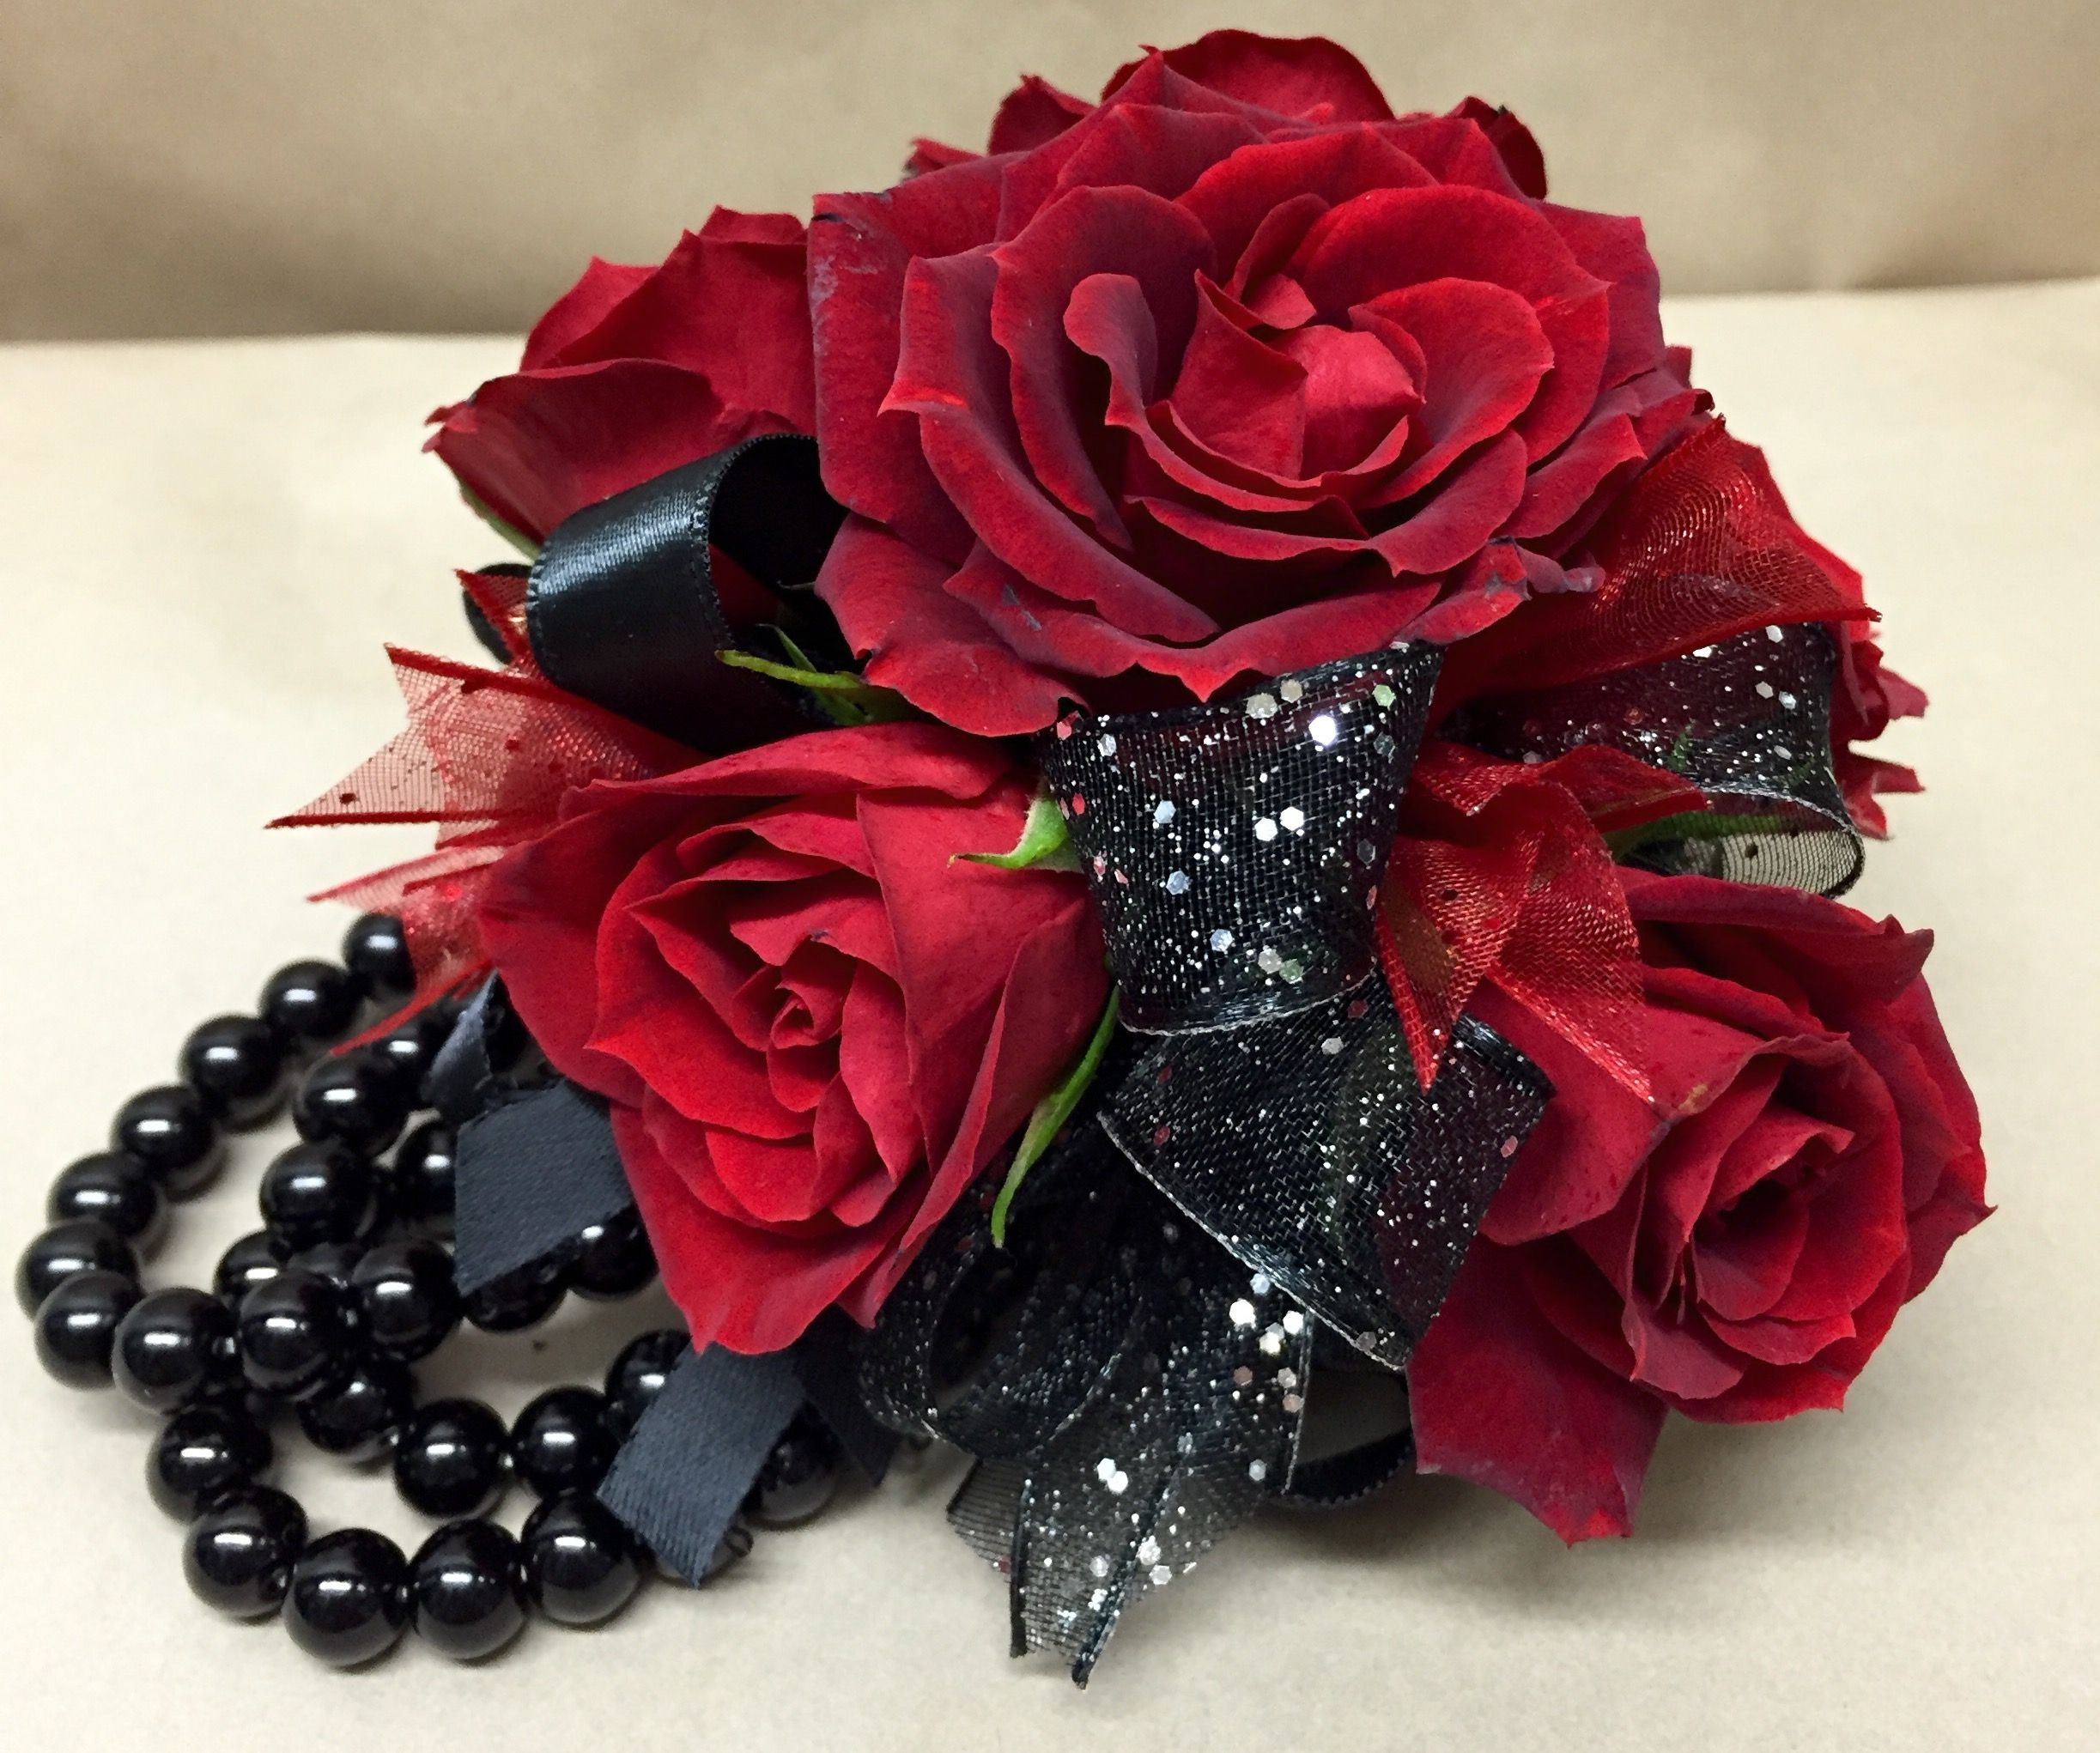 Pin By Leigh Florist On Leigh Florist Prom And Dance Pinterest